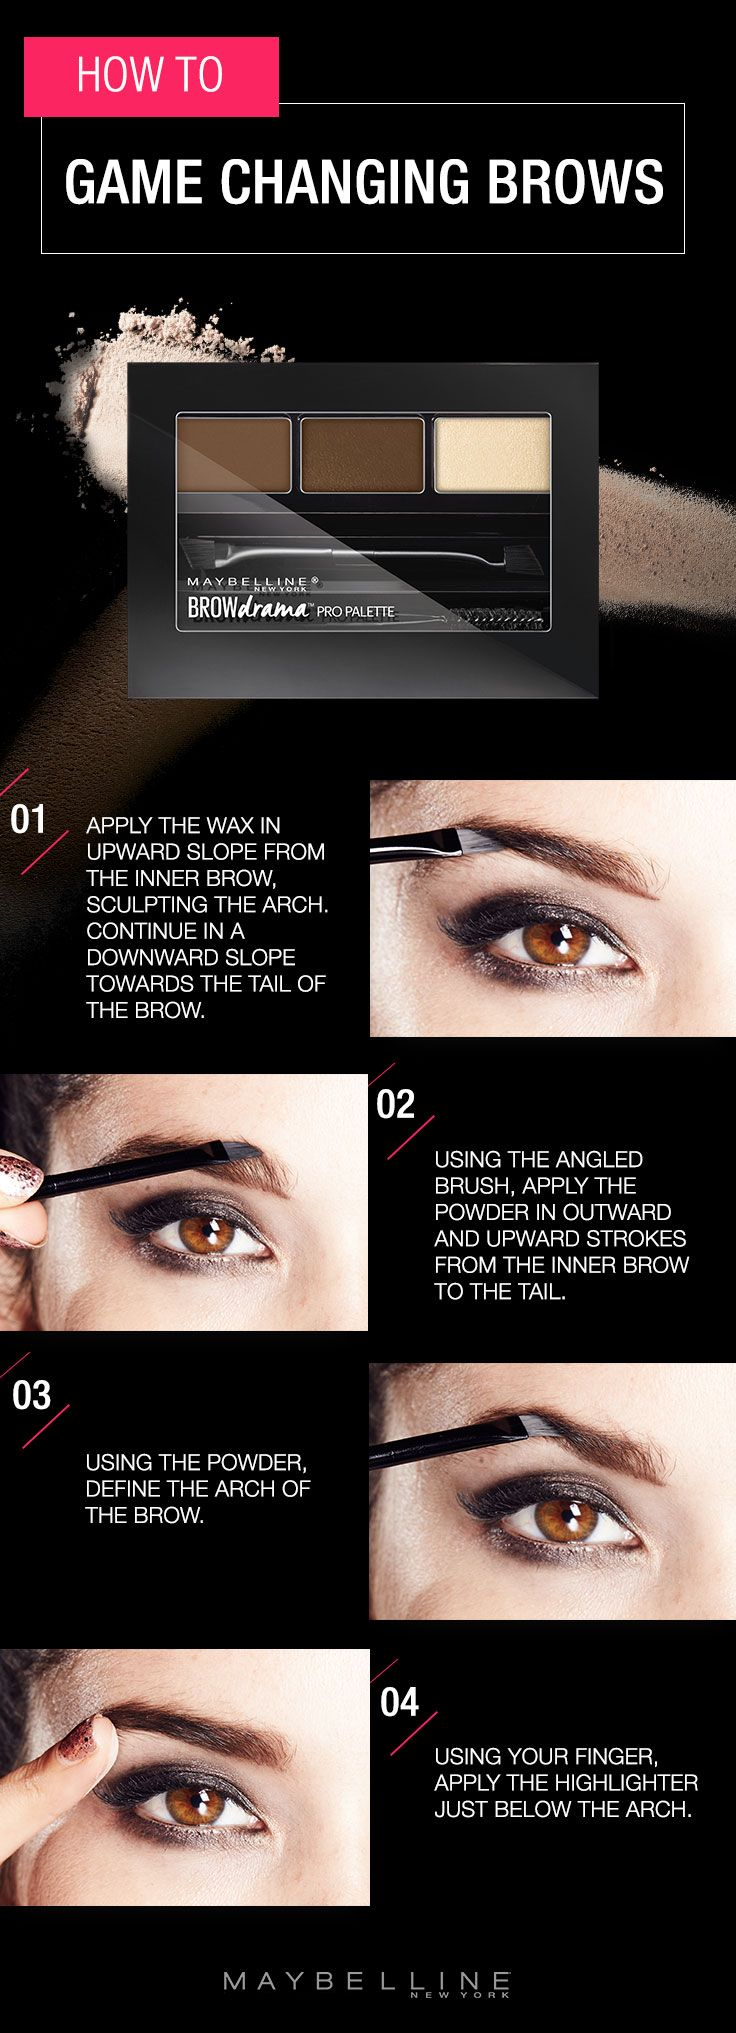 Here is how to have a serious brow shaping game with Maybelline Brow Drama Pro Palette following this step-by-step eye brow makeup tutorial in 3, 2, 1... Start with defining your brows. Then fill them in. Complete the look by highlighting the arch of the brow for your boldest eye brows. Now you're ready to show off your Memorial Day look. Click for more product details.